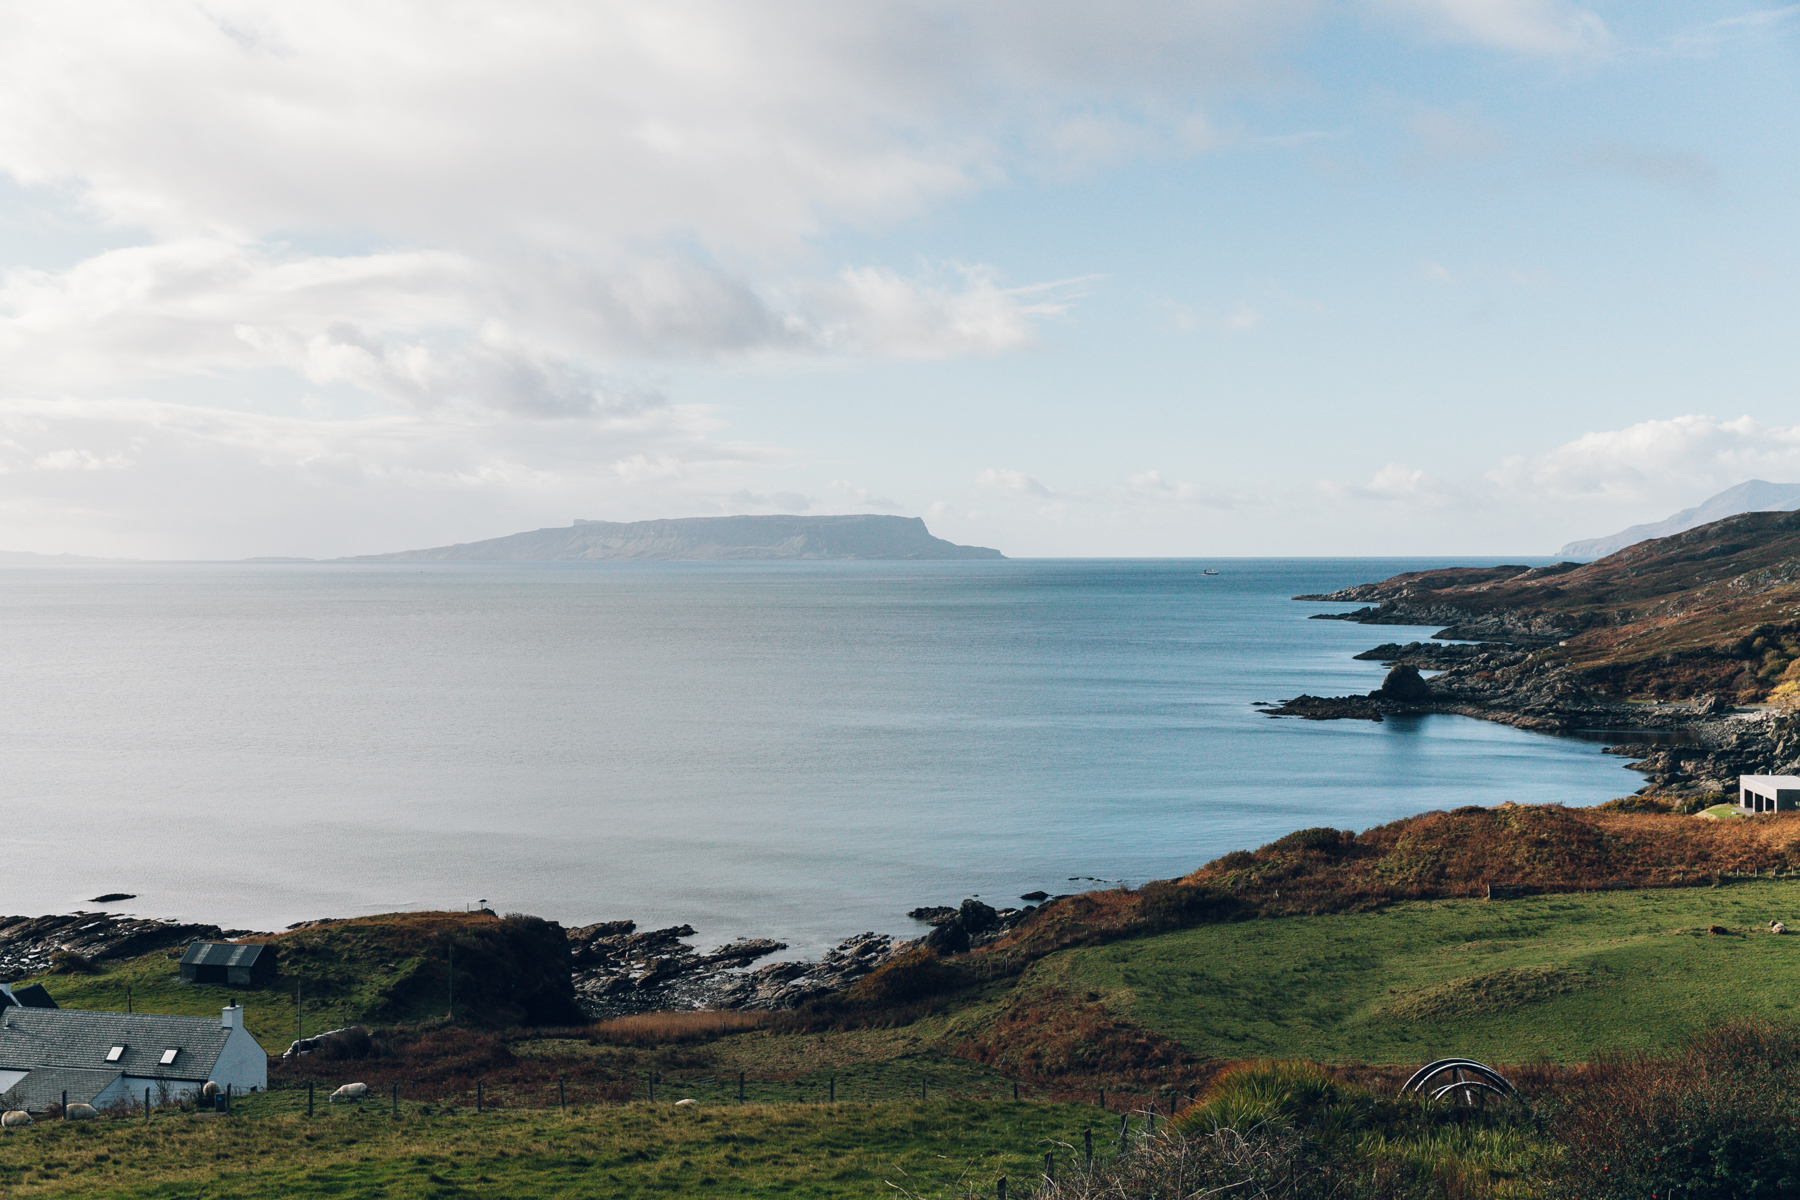 Spectacular views from Sleat on the Isle of Skye.